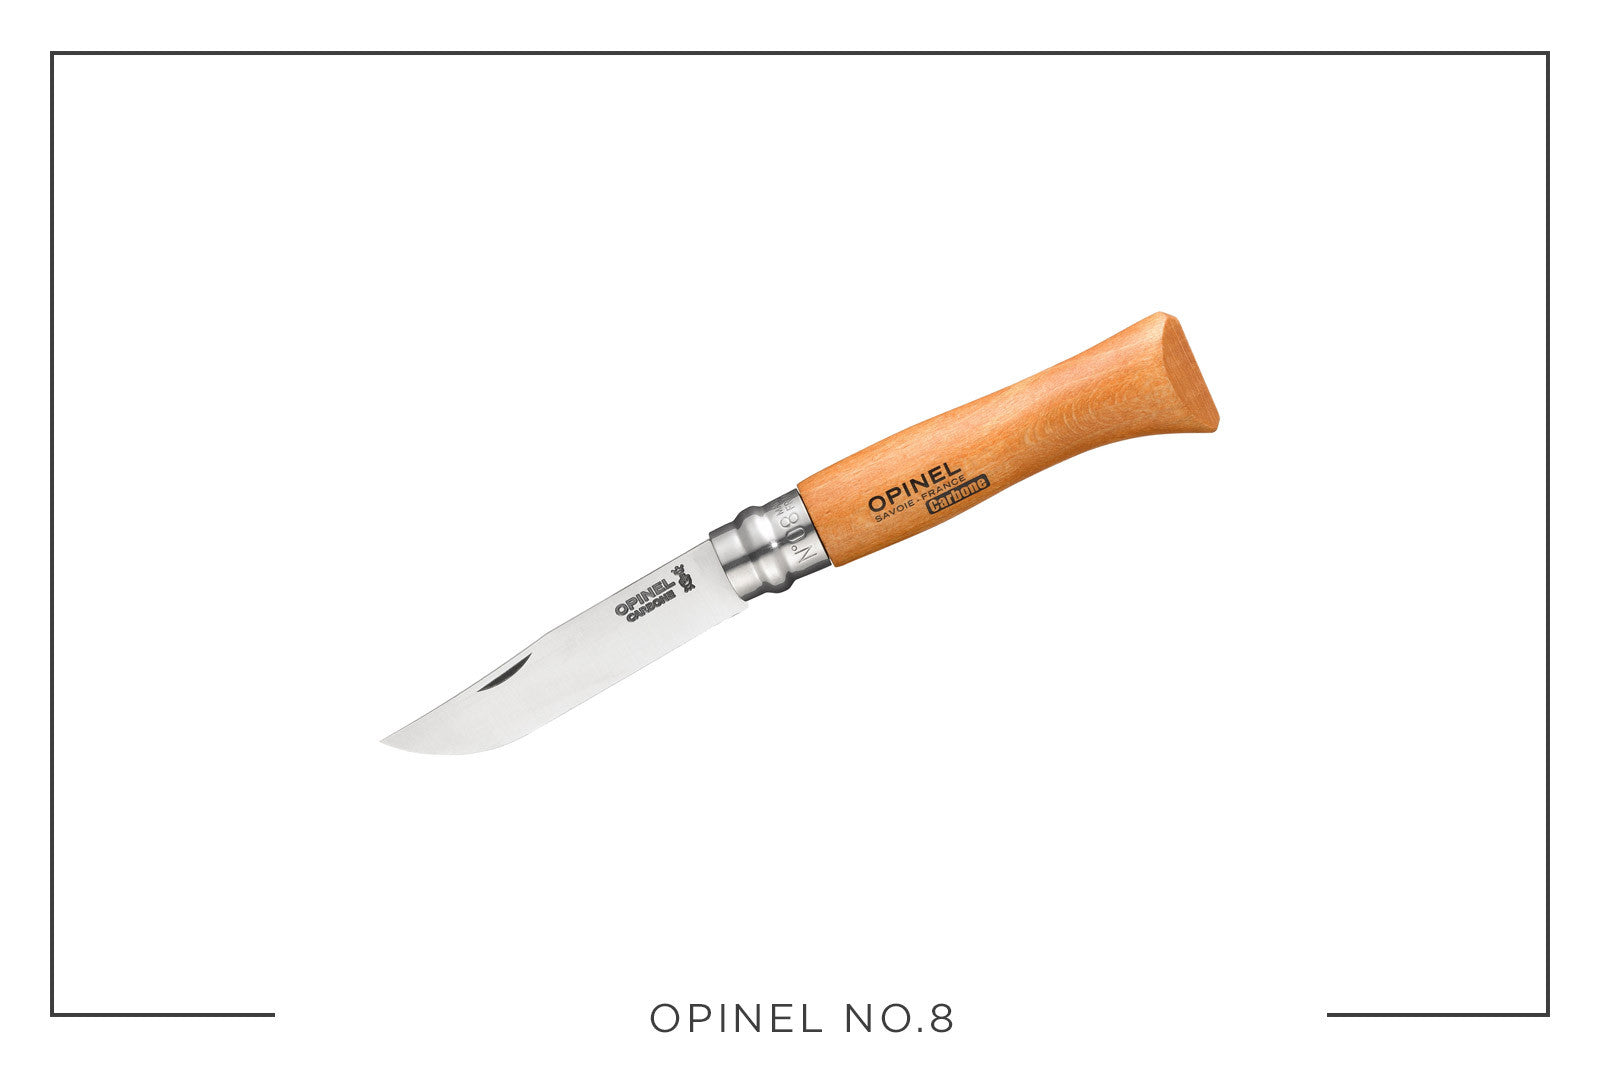 Best Camp Knives Opinel no8